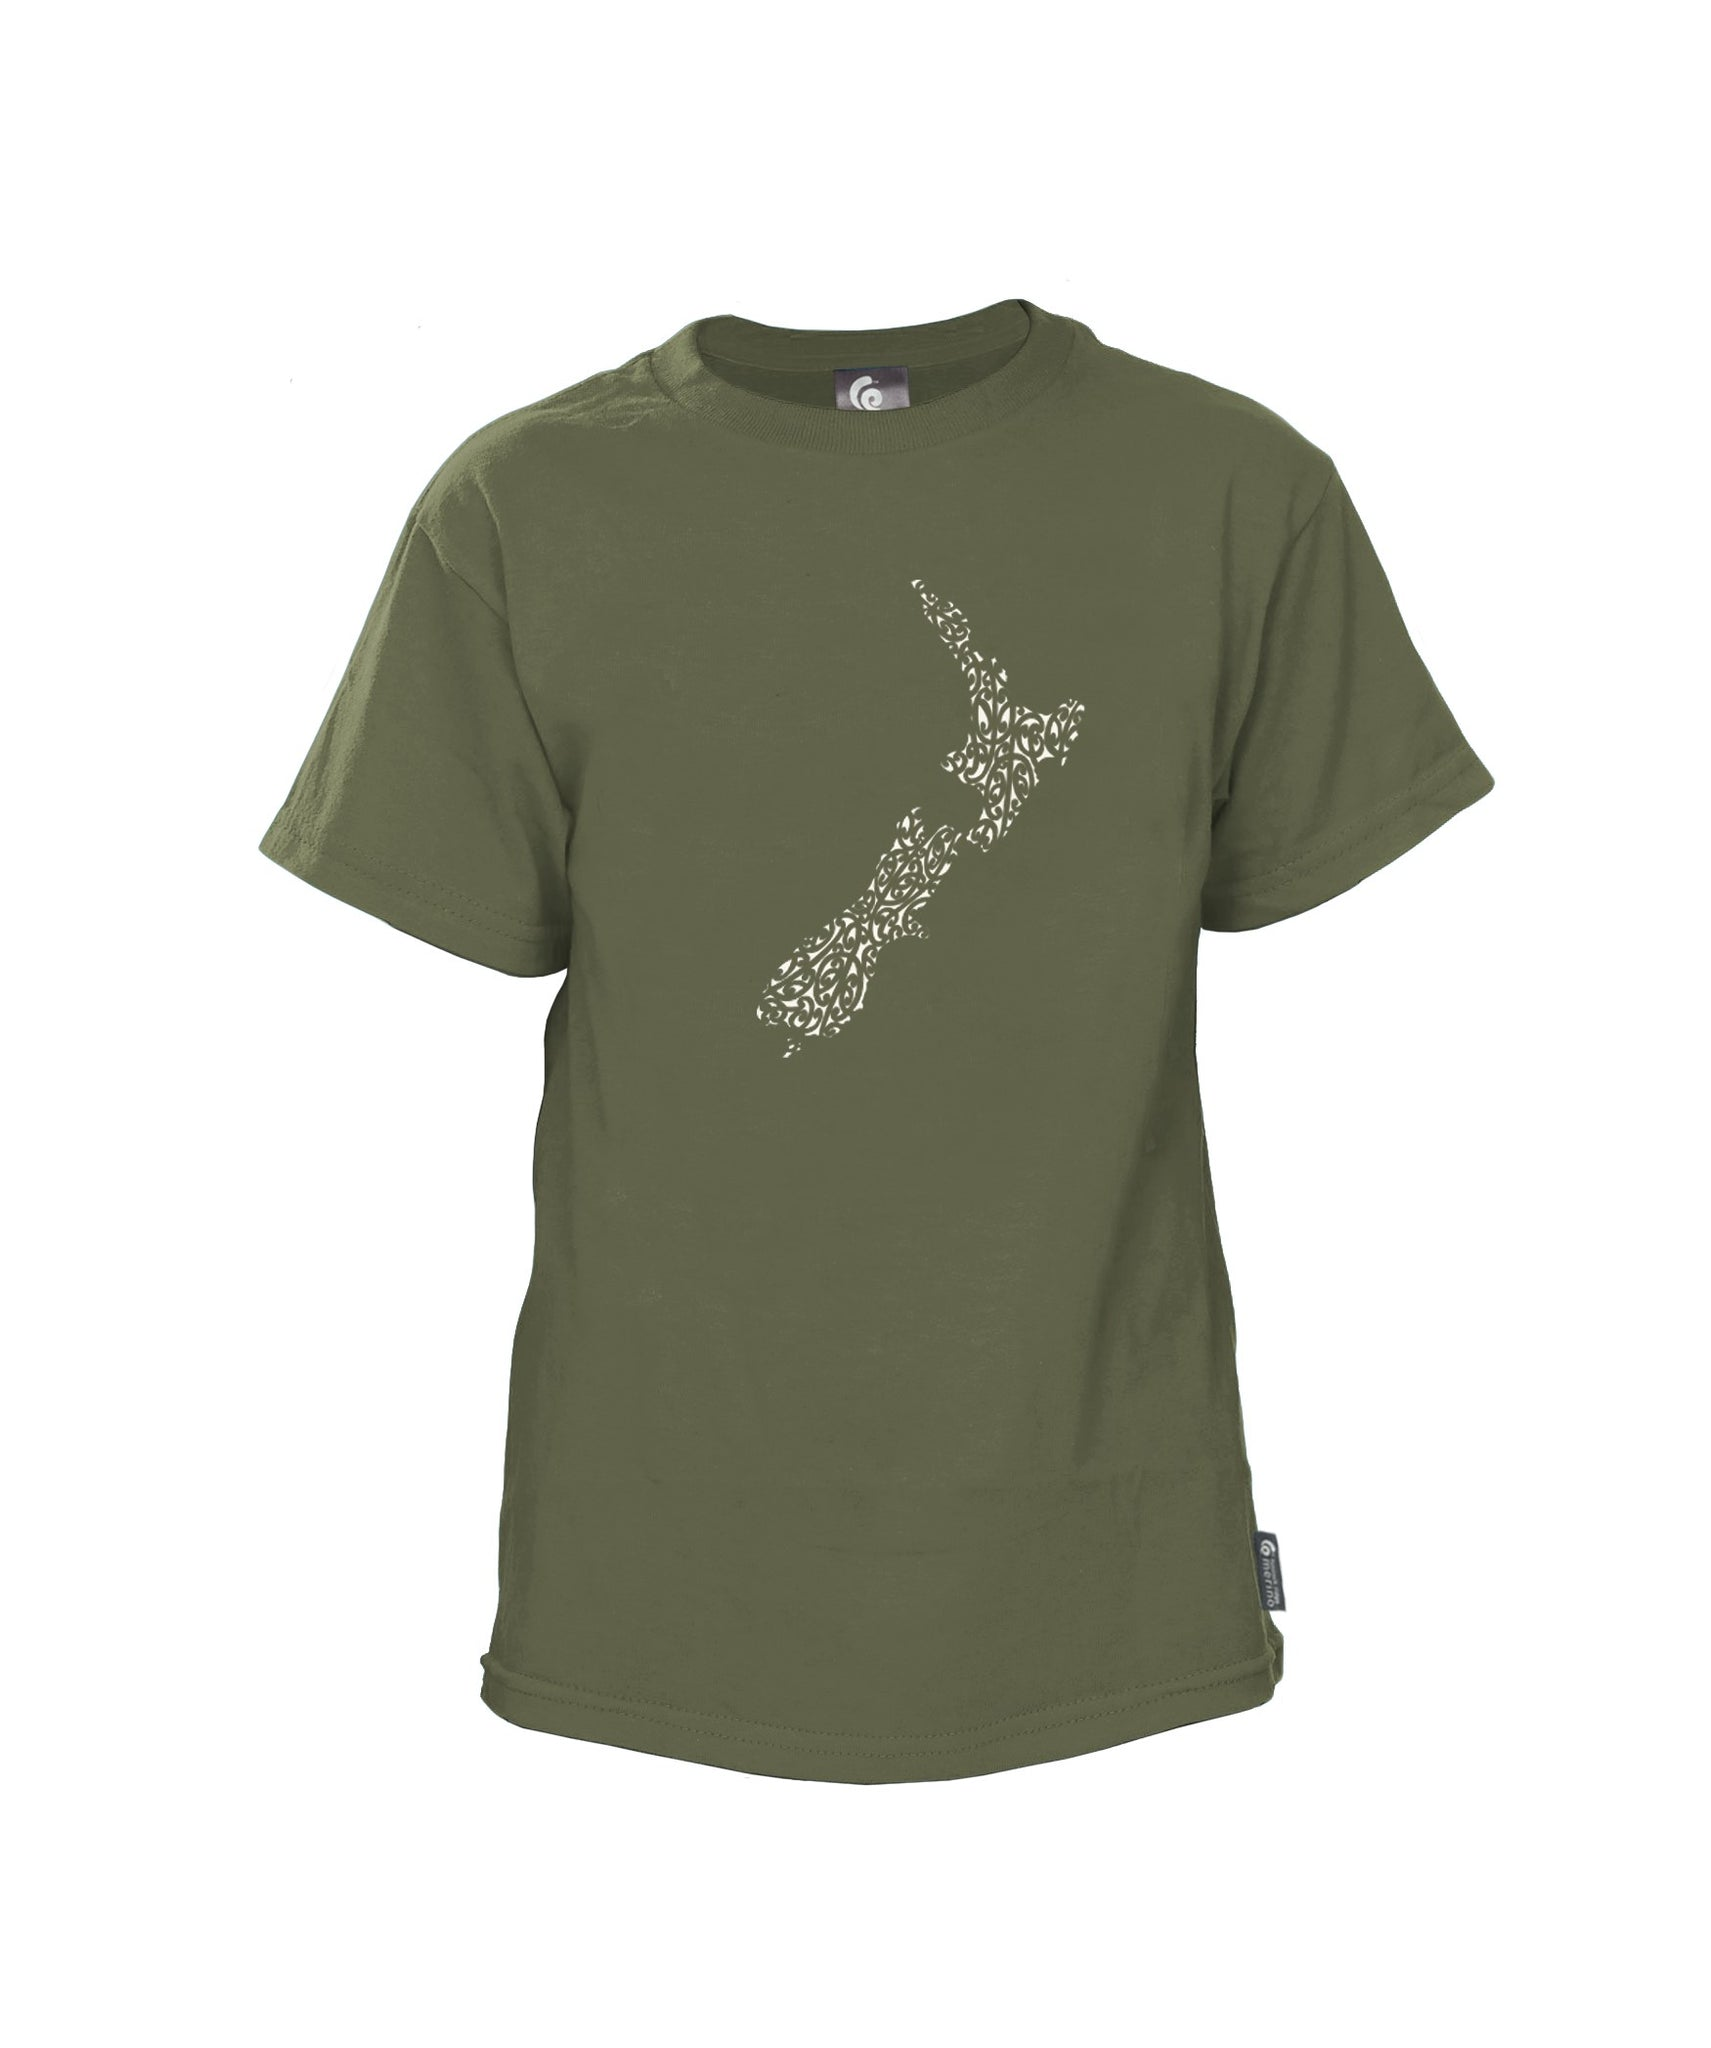 Merino Kids NZ Map Tee. Made in New Zealand